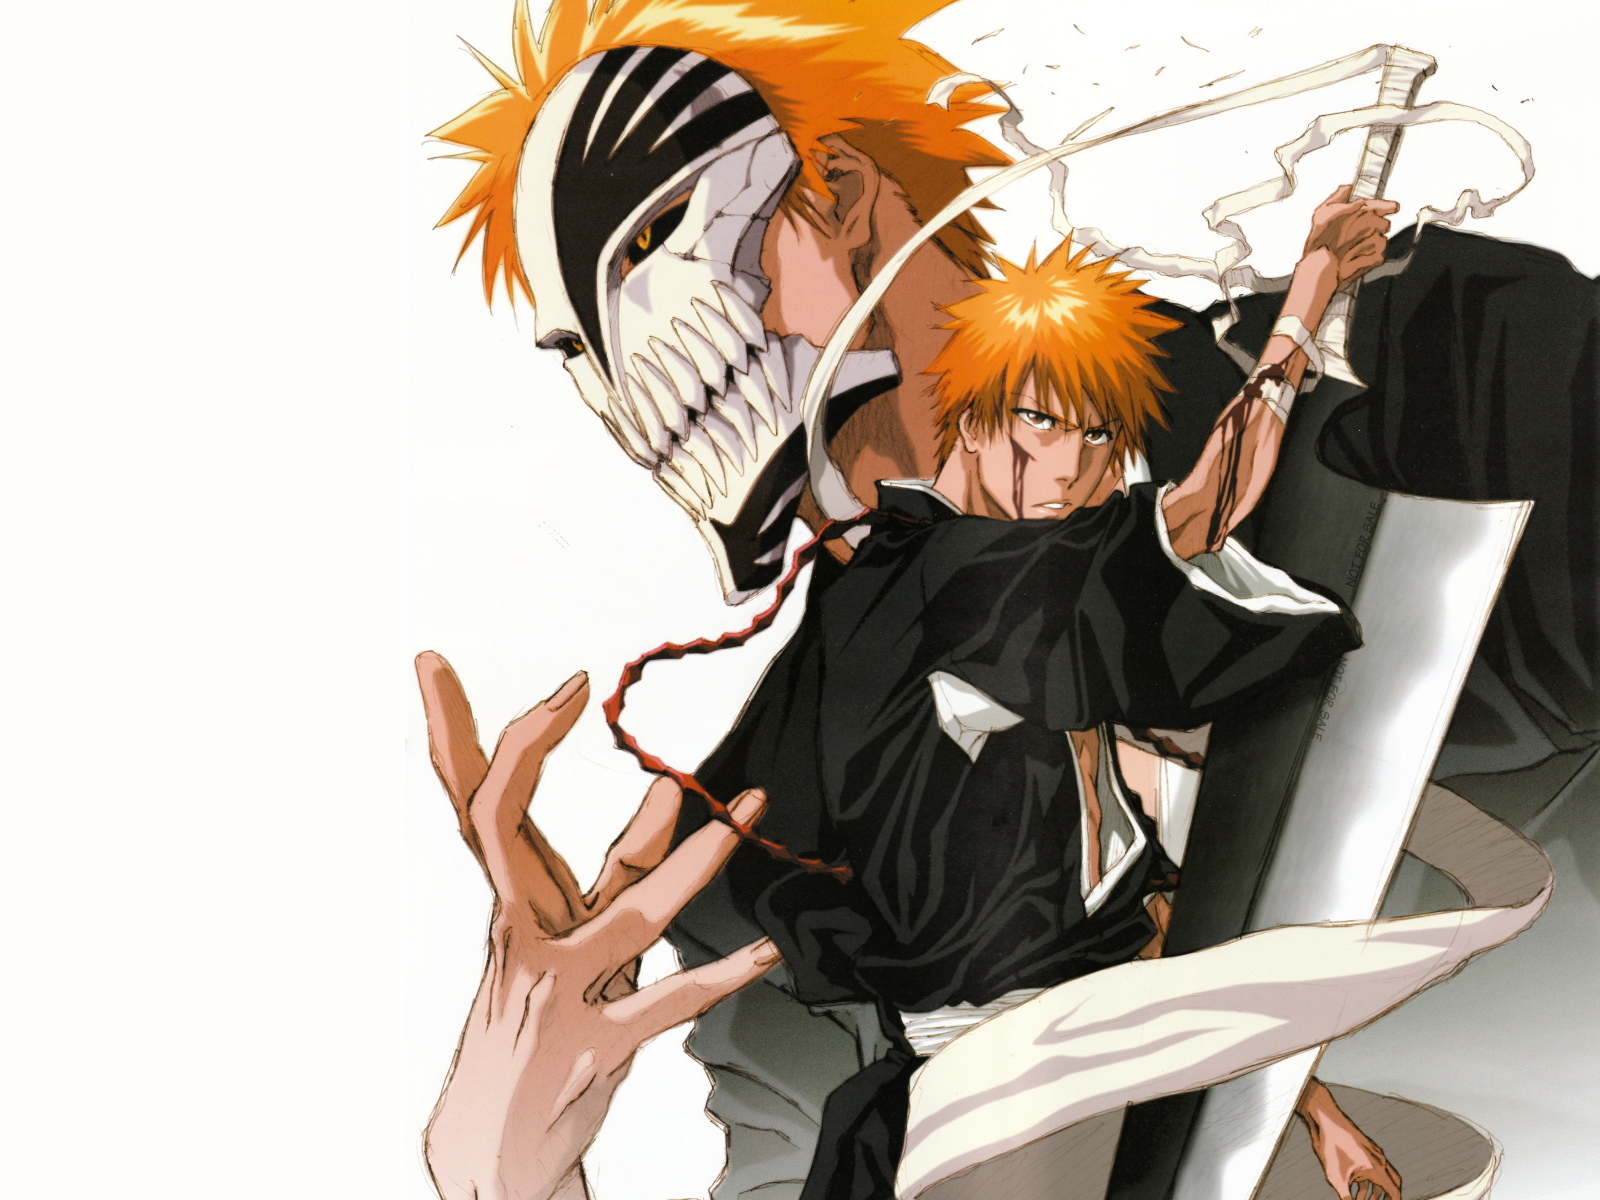 I watched the Bleach anime first, and I heard that the continuation is only in the manga. So if it's possible, I'd like to know which chapter corresponds to the end.